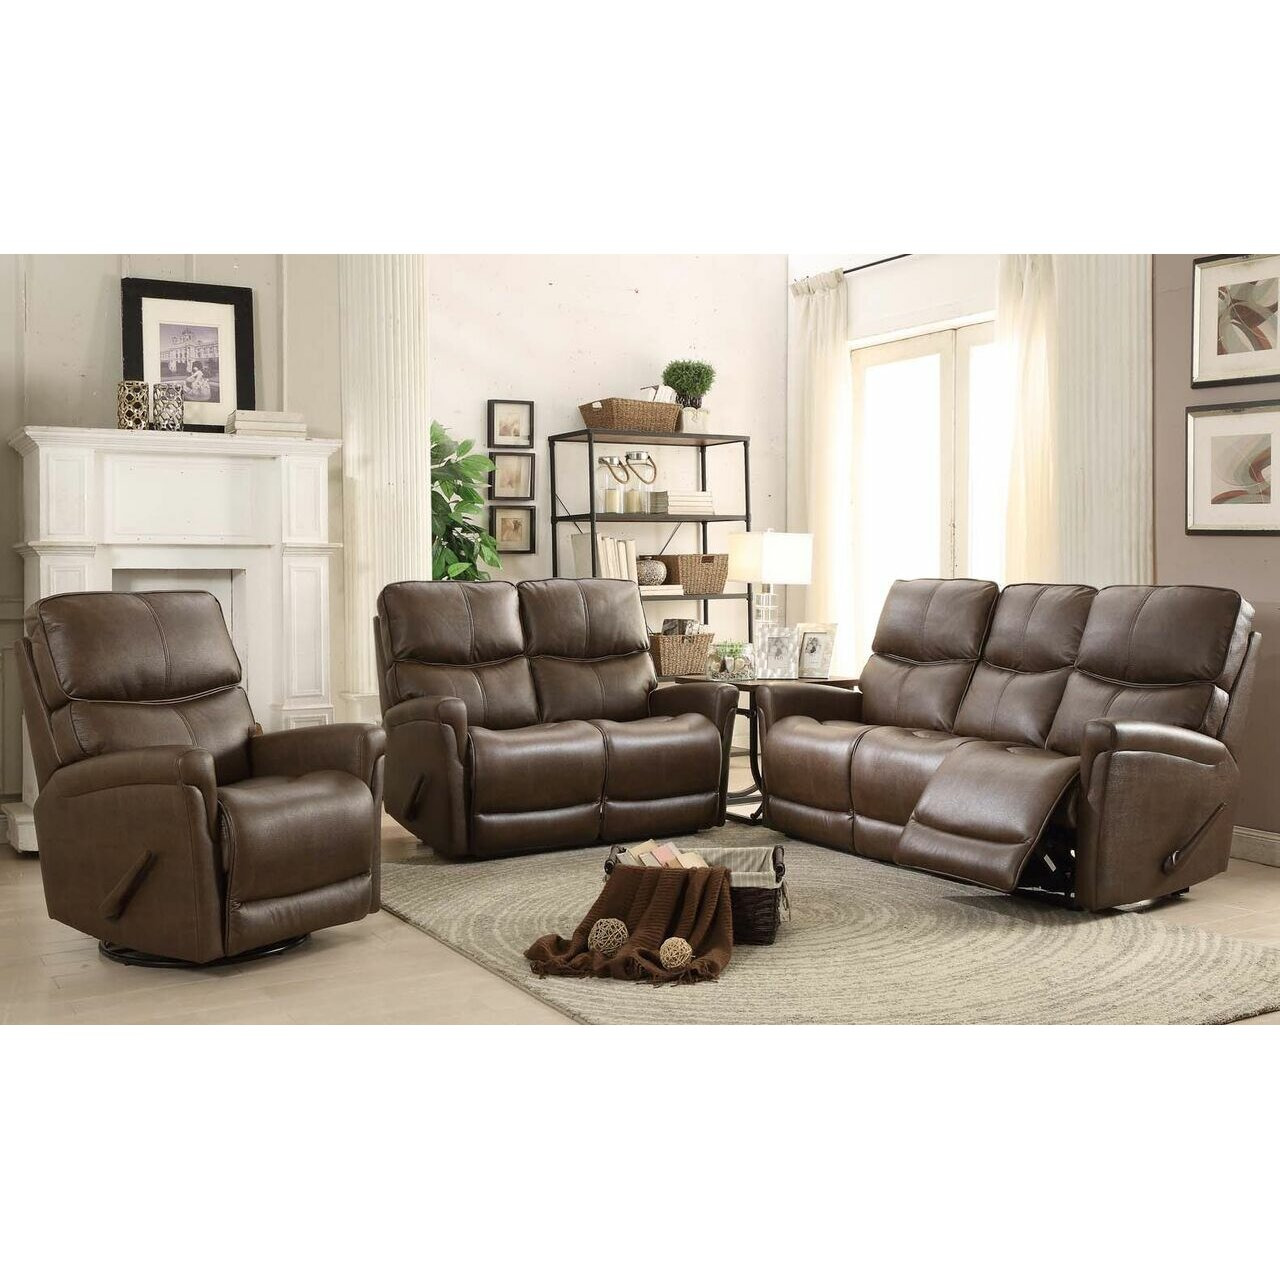 Easy living cologne 3 piece reclining living room set for 3 piece living room set